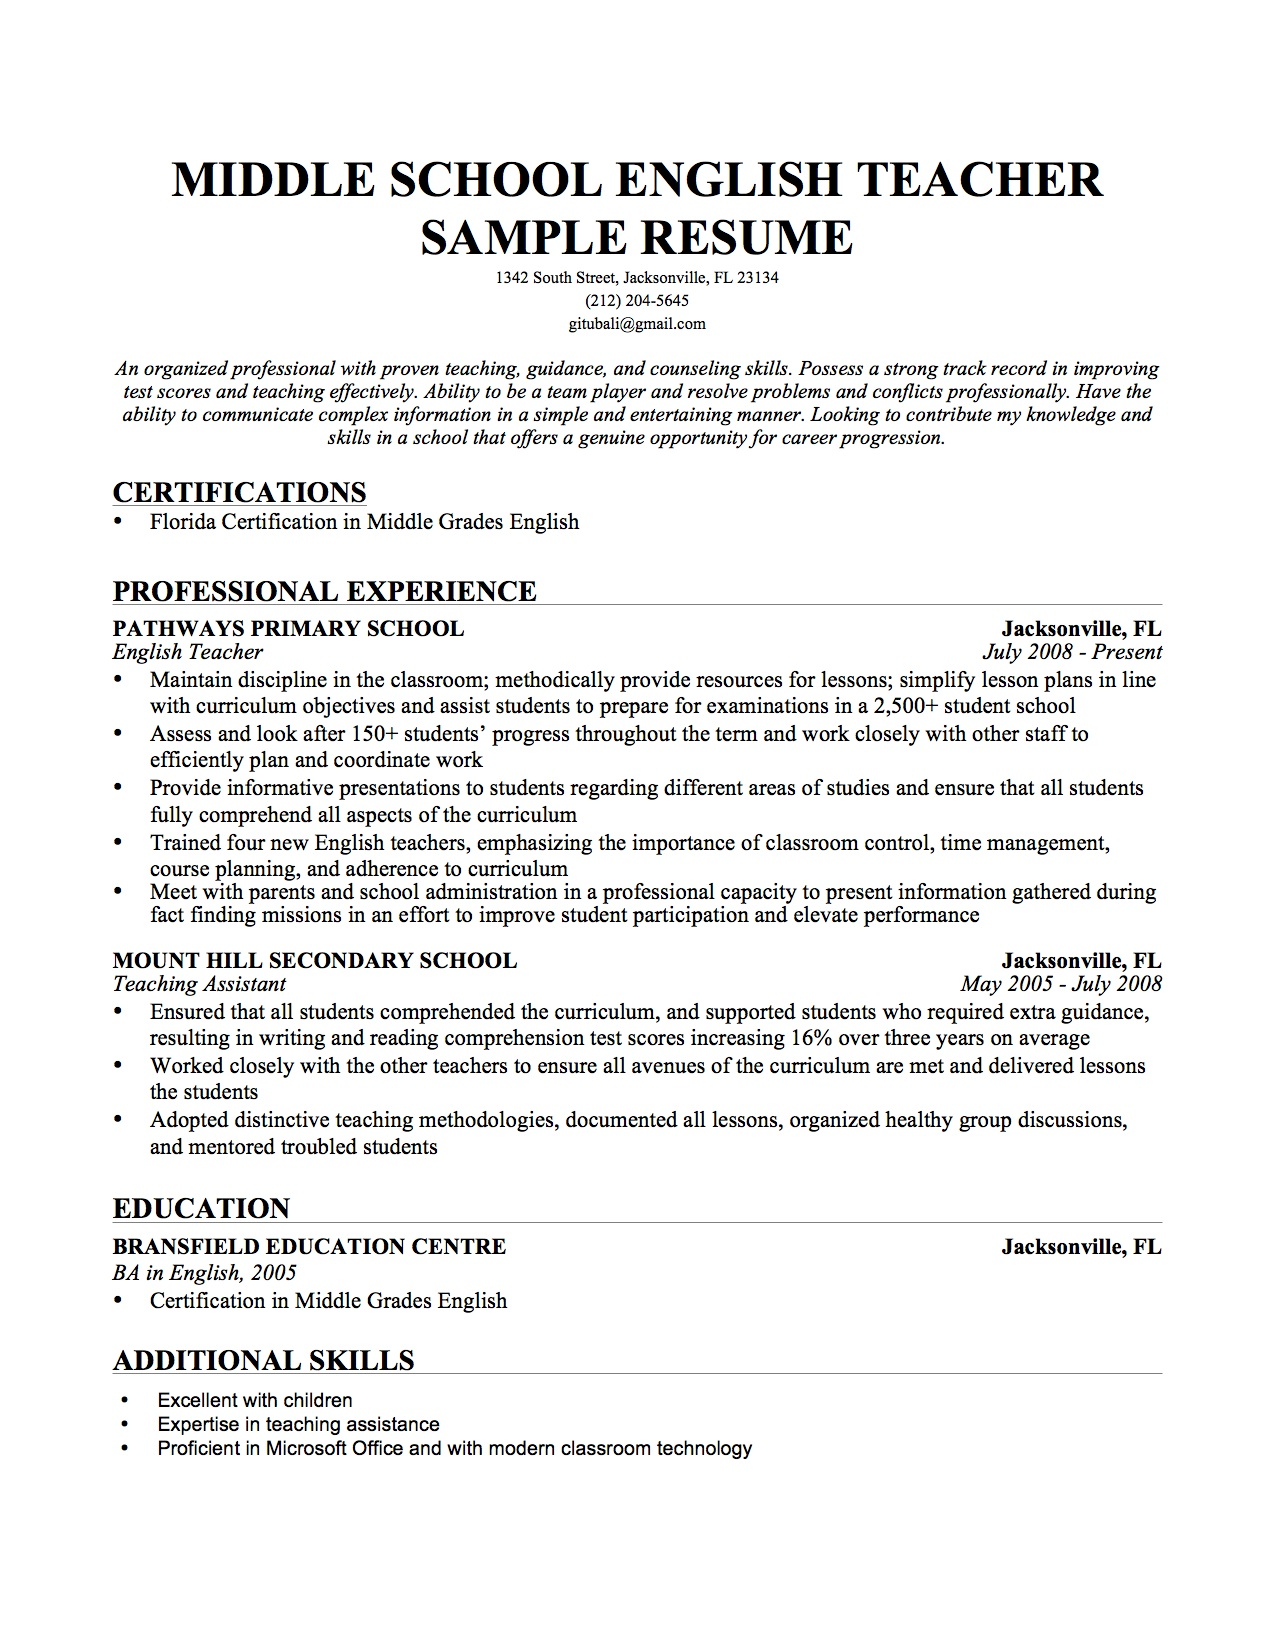 manager hr resume format sample service resume manager hr resume format manager cv example hr phd resume and cover letter english teacher cover